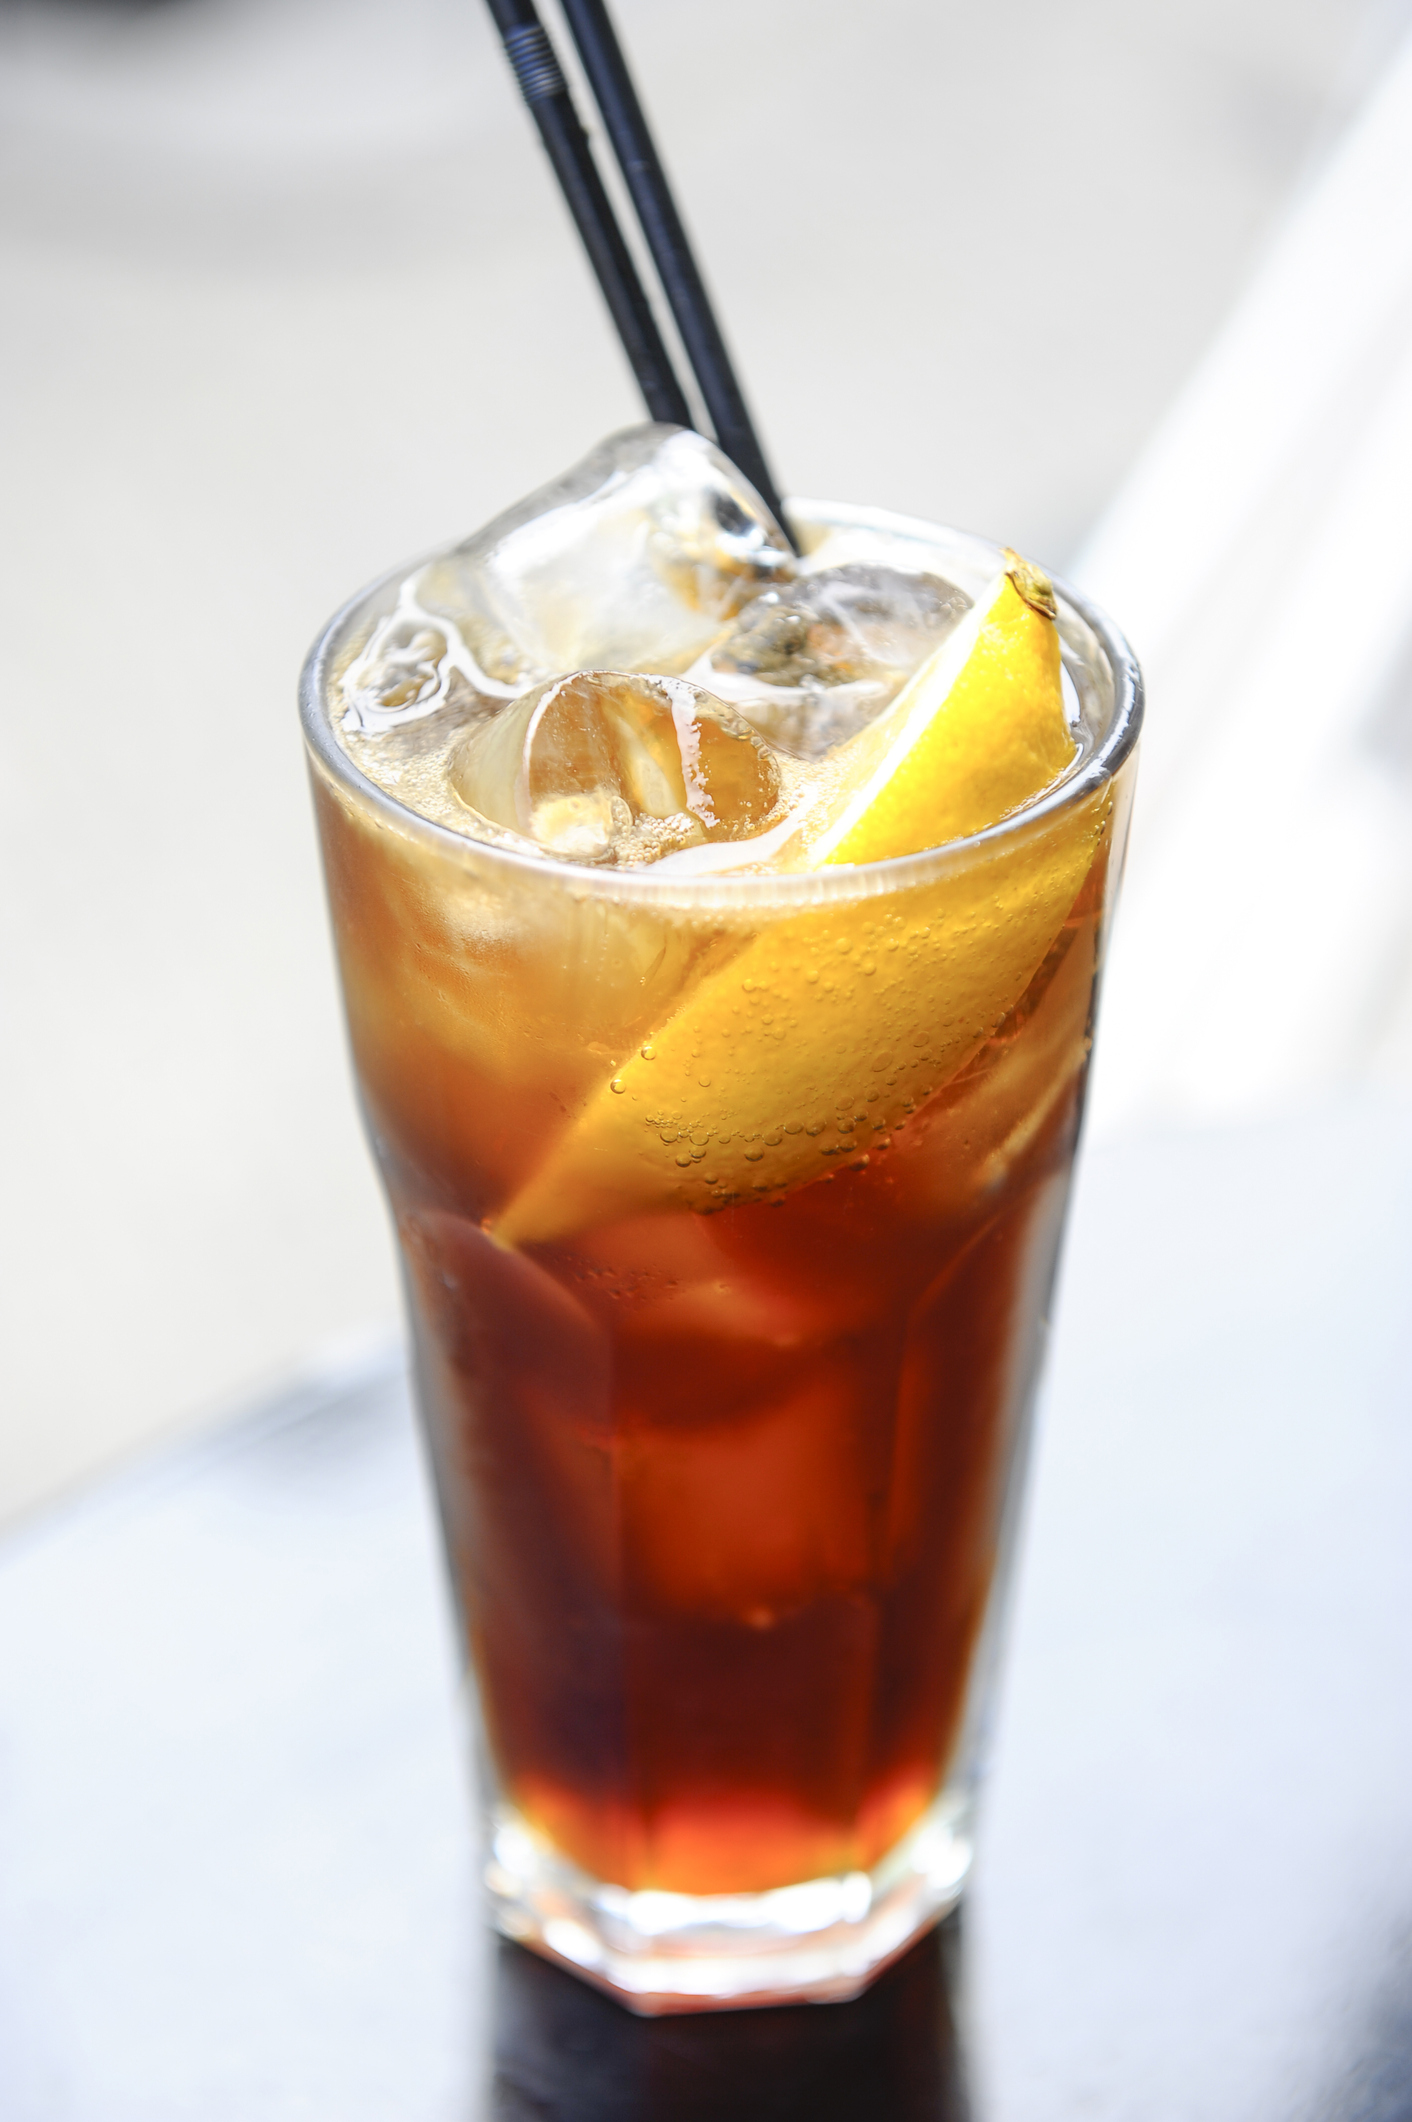 CeeLo Green (Long Island Iced Tea)